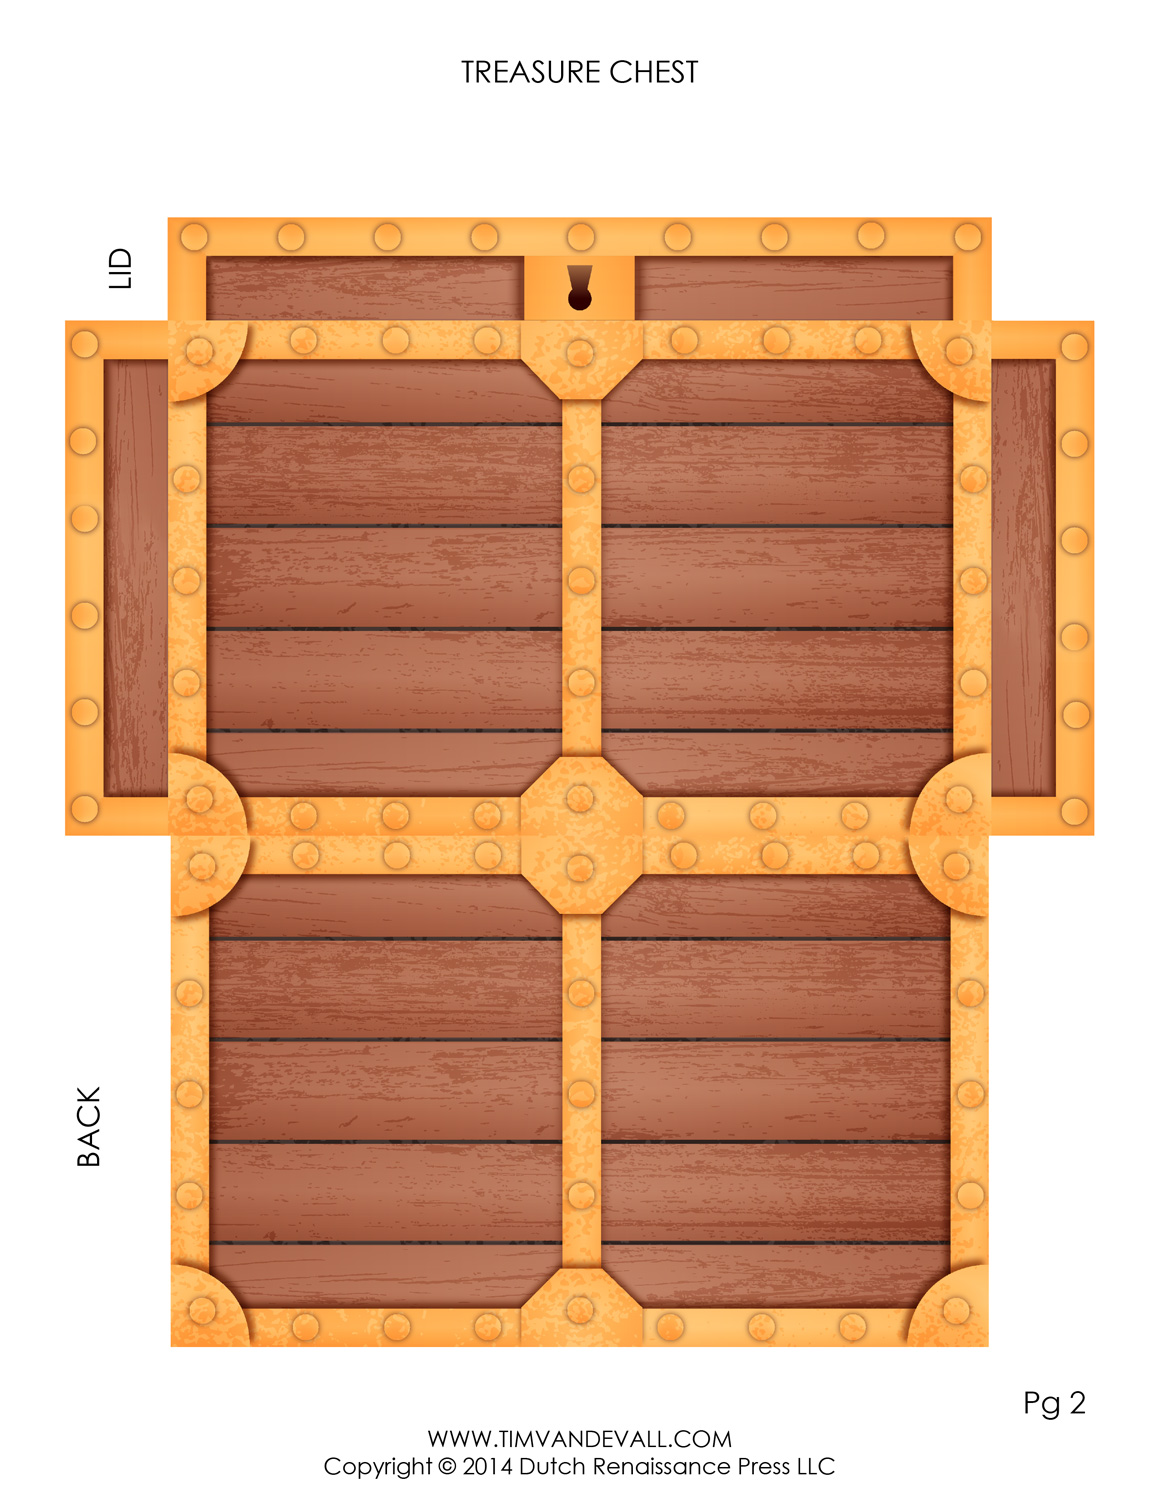 It is a graphic of Bewitching Printable Treasure Chests